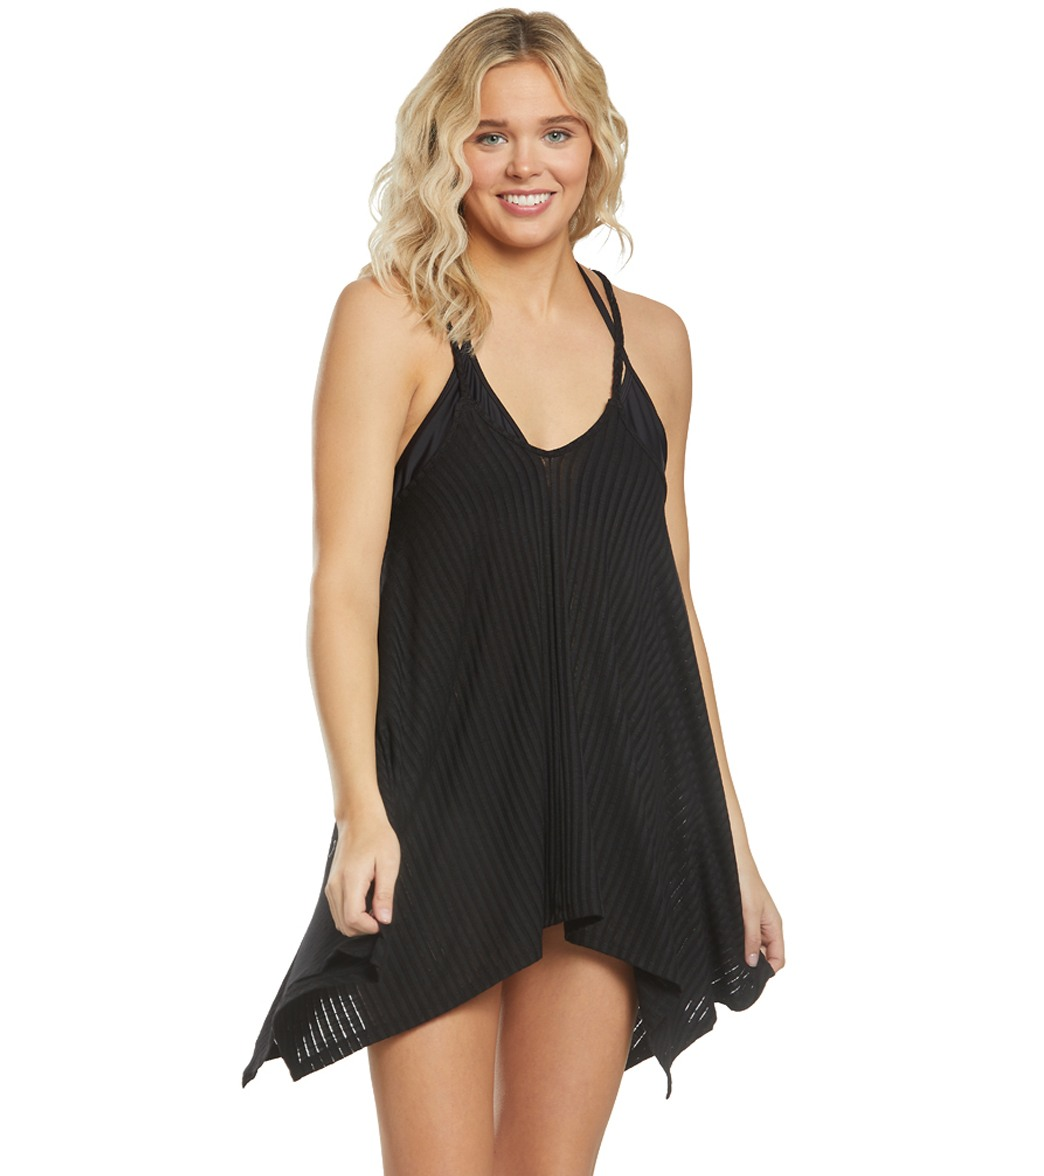 e6f6abbcde Billabong Twisted View 2 Cover Up Dress at SwimOutlet.com - Free Shipping